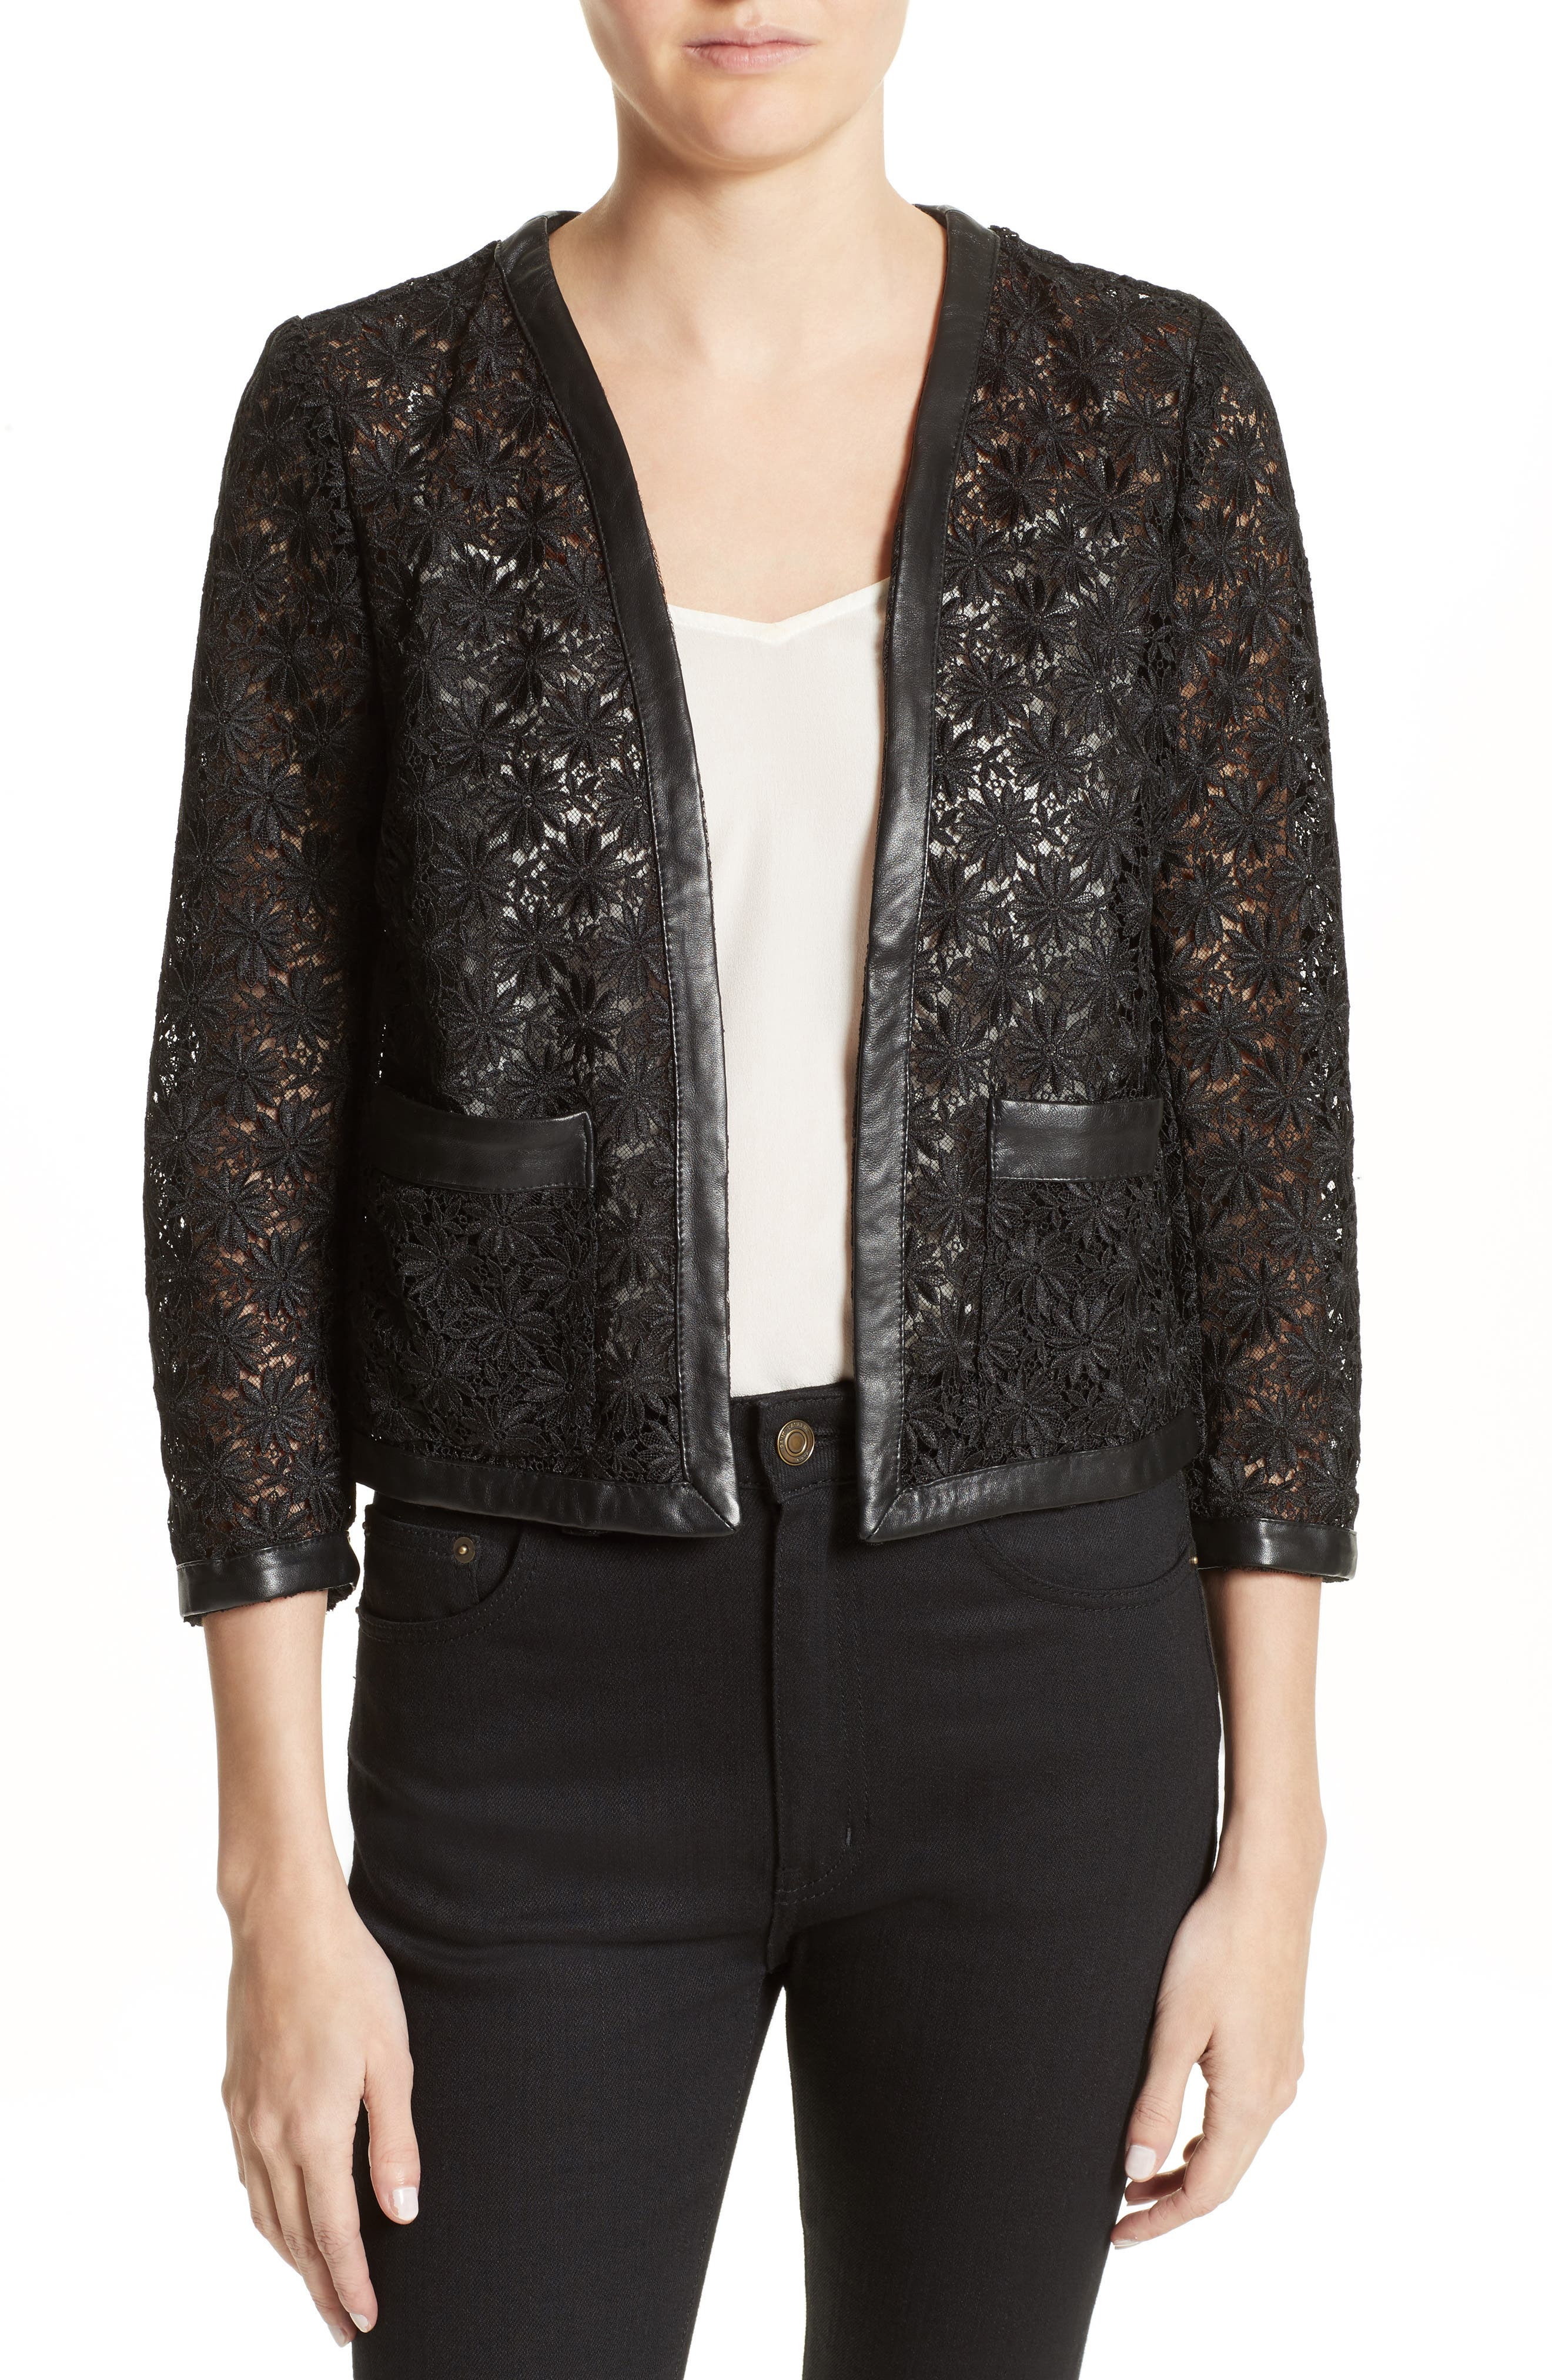 Alternate Image 1 Selected - The Kooples Faux Leather Trim Lace Jacket